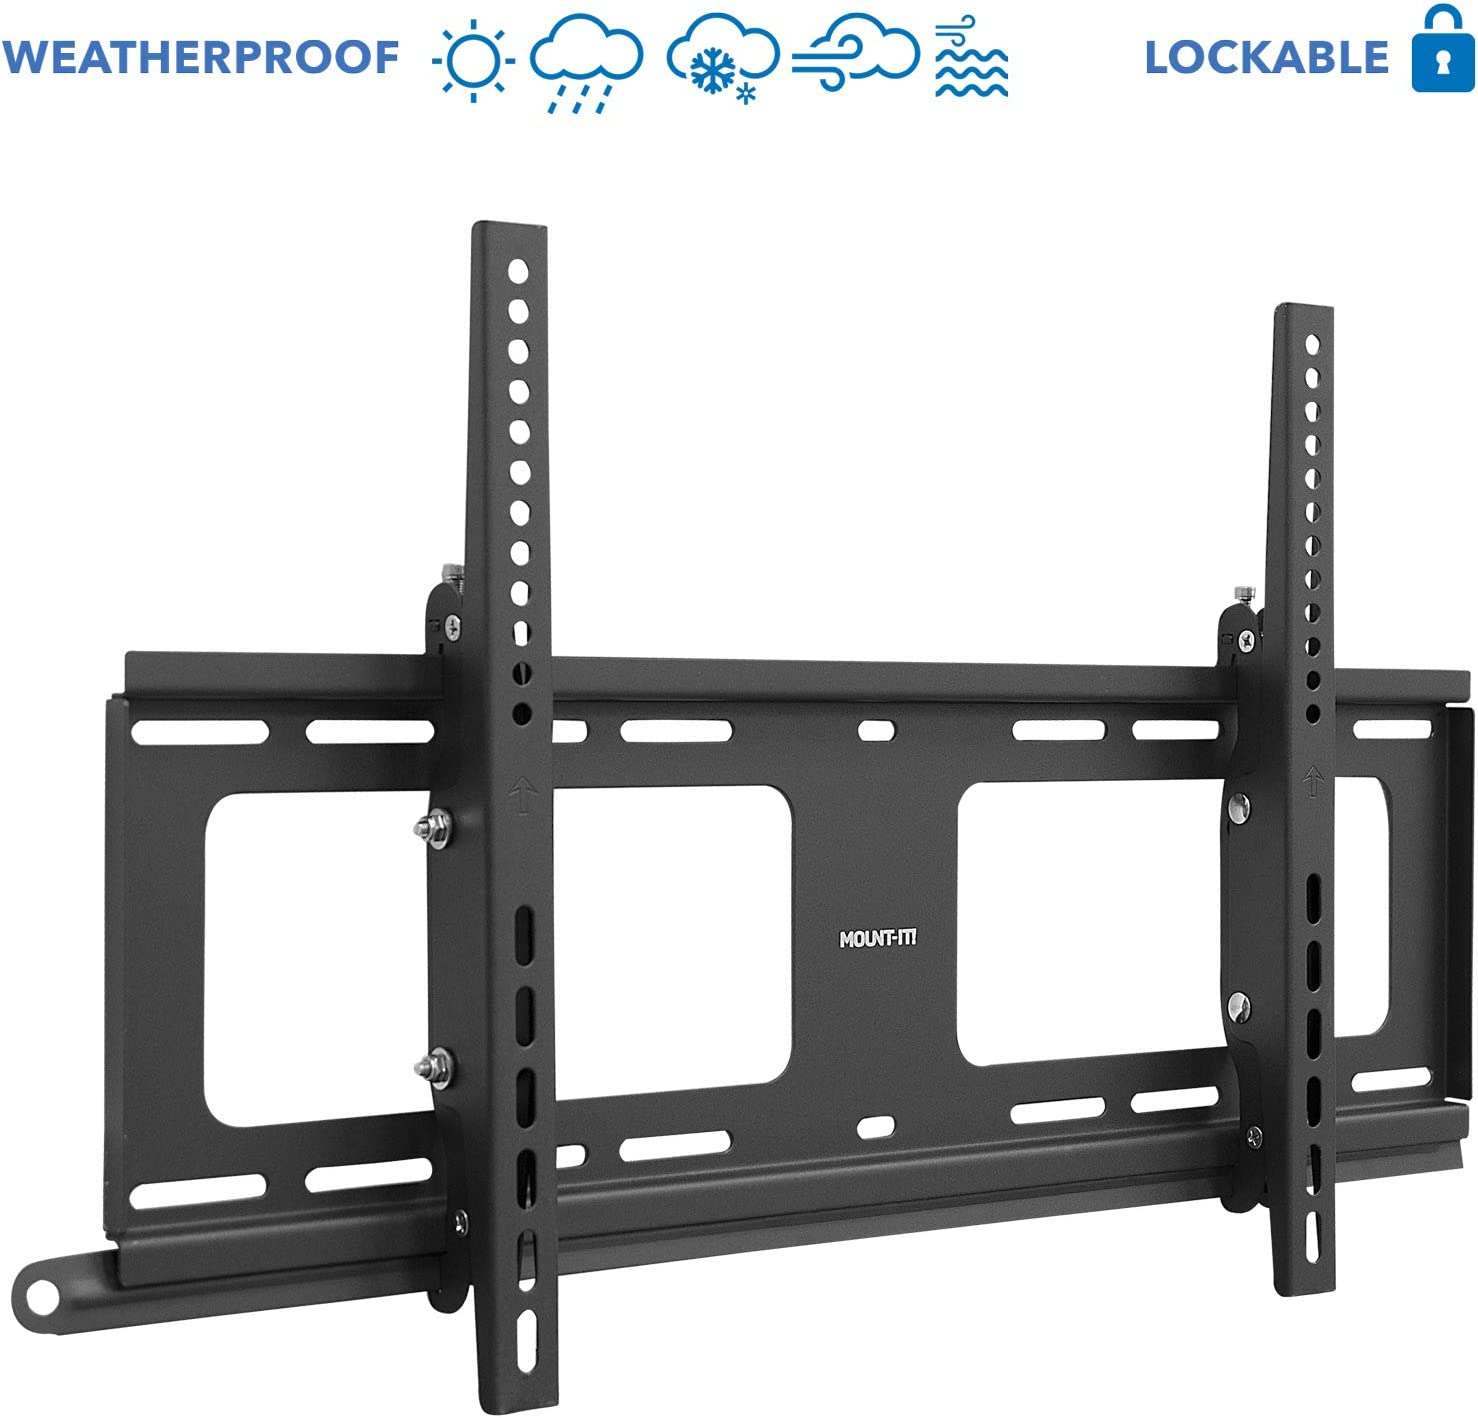 "Mount-It! Weatherproof Outdoor TV Wall Mount | Lockable & Tilting 2.1"" Low Profile Design Fits 37 38 42 50 55 58 60 65 70 75 80 Inch Televisions 